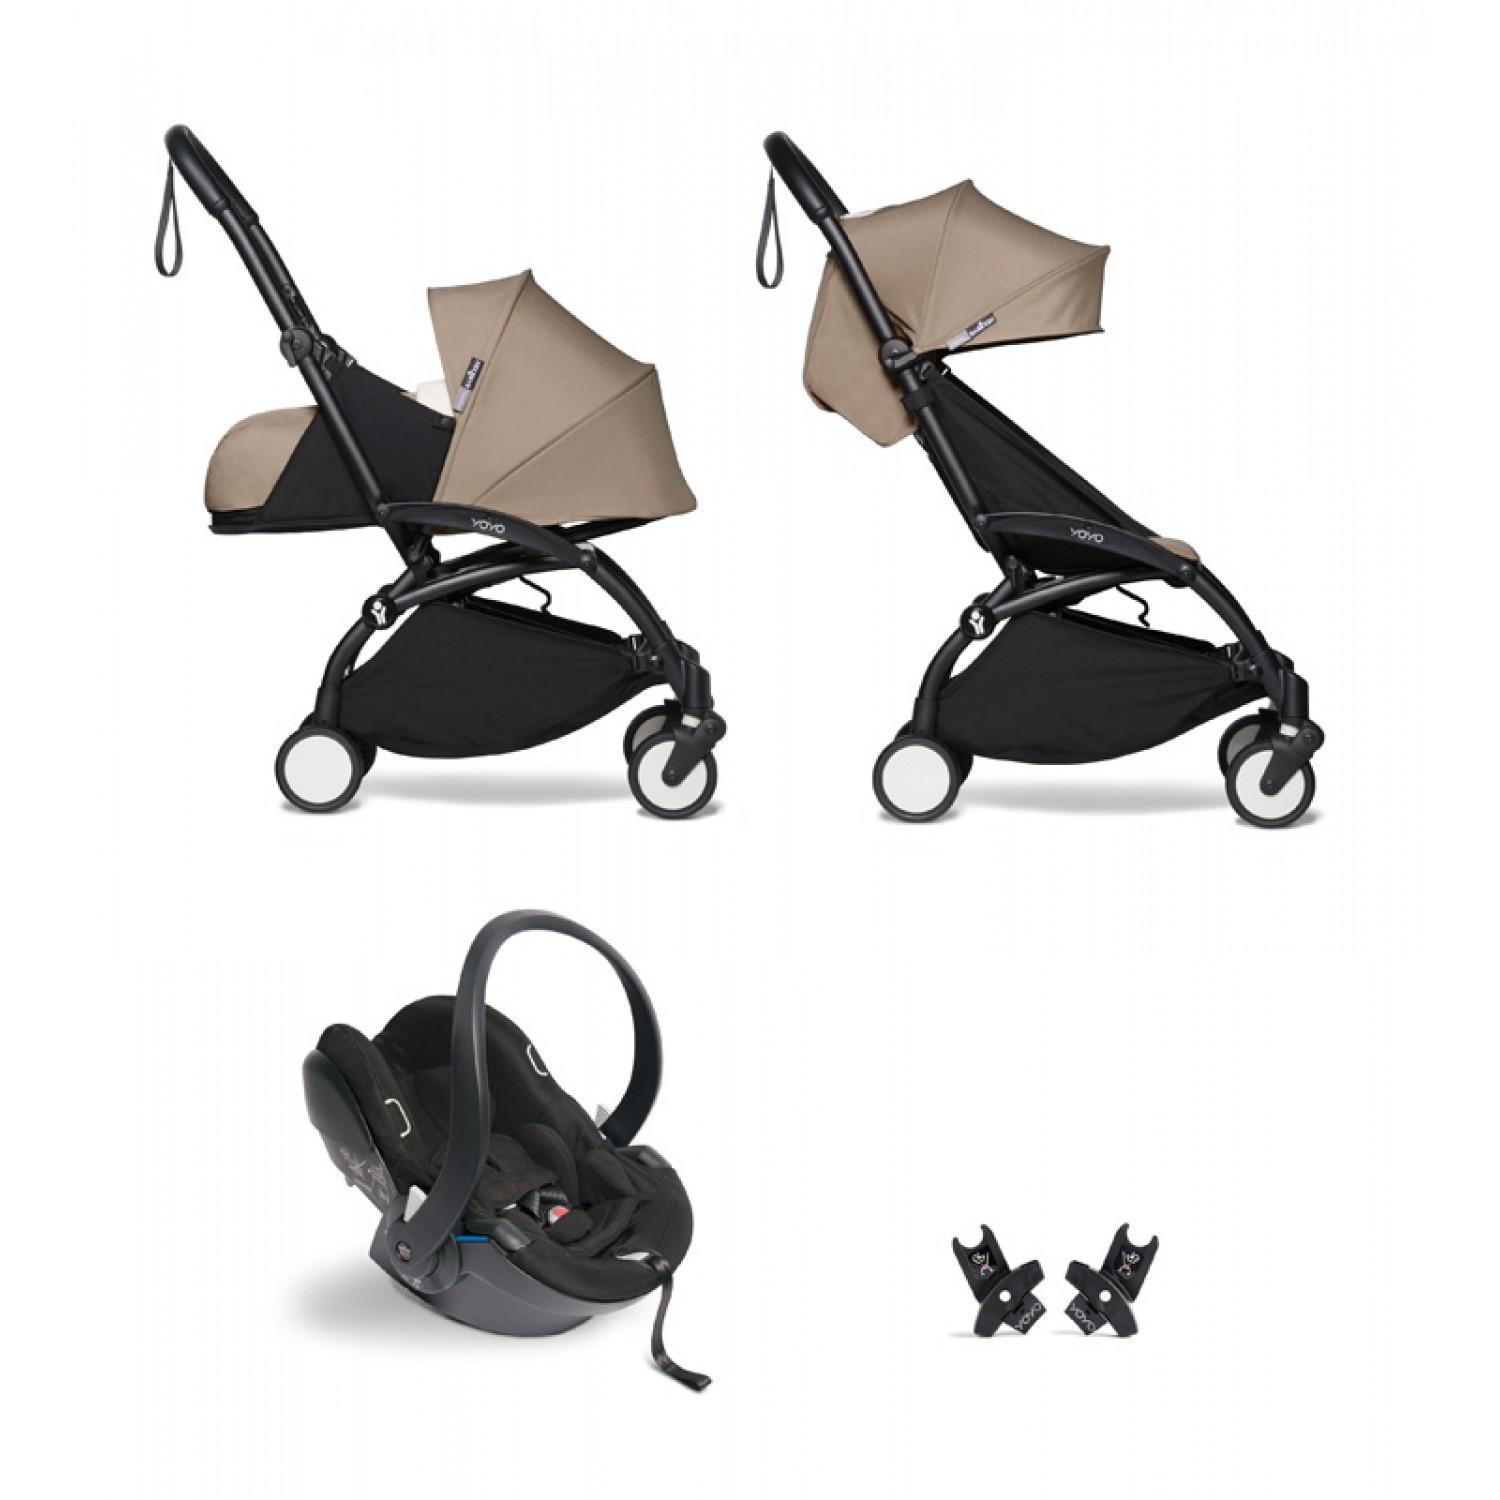 All-in-one BABYZEN stroller YOYO2 0+, car seat and 6+ | Black Chassis Taupe